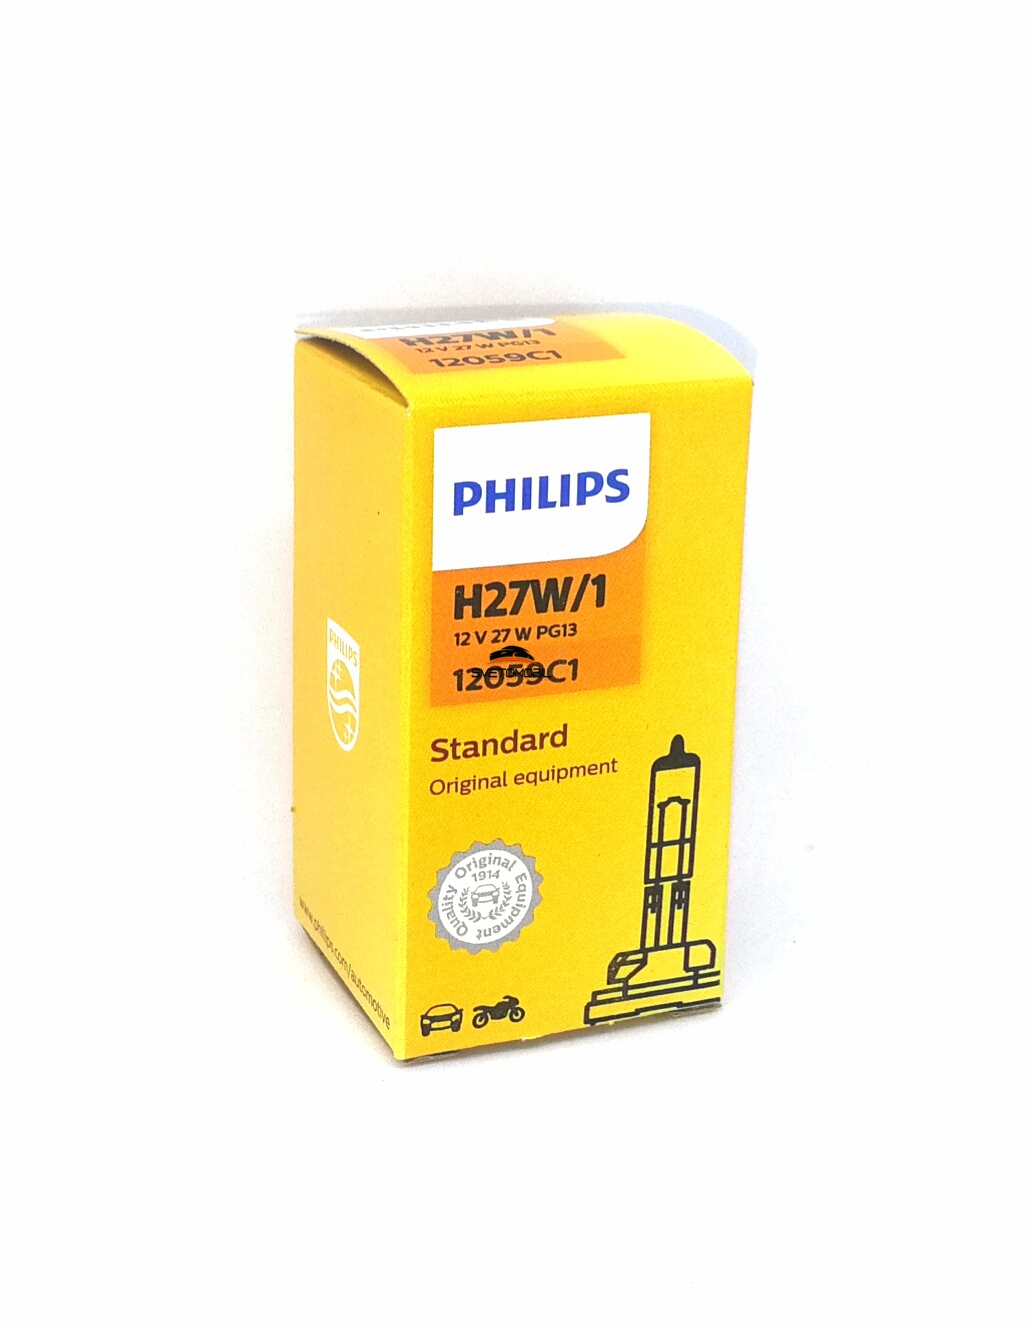 Philips Vision H27W/1 12V/27w